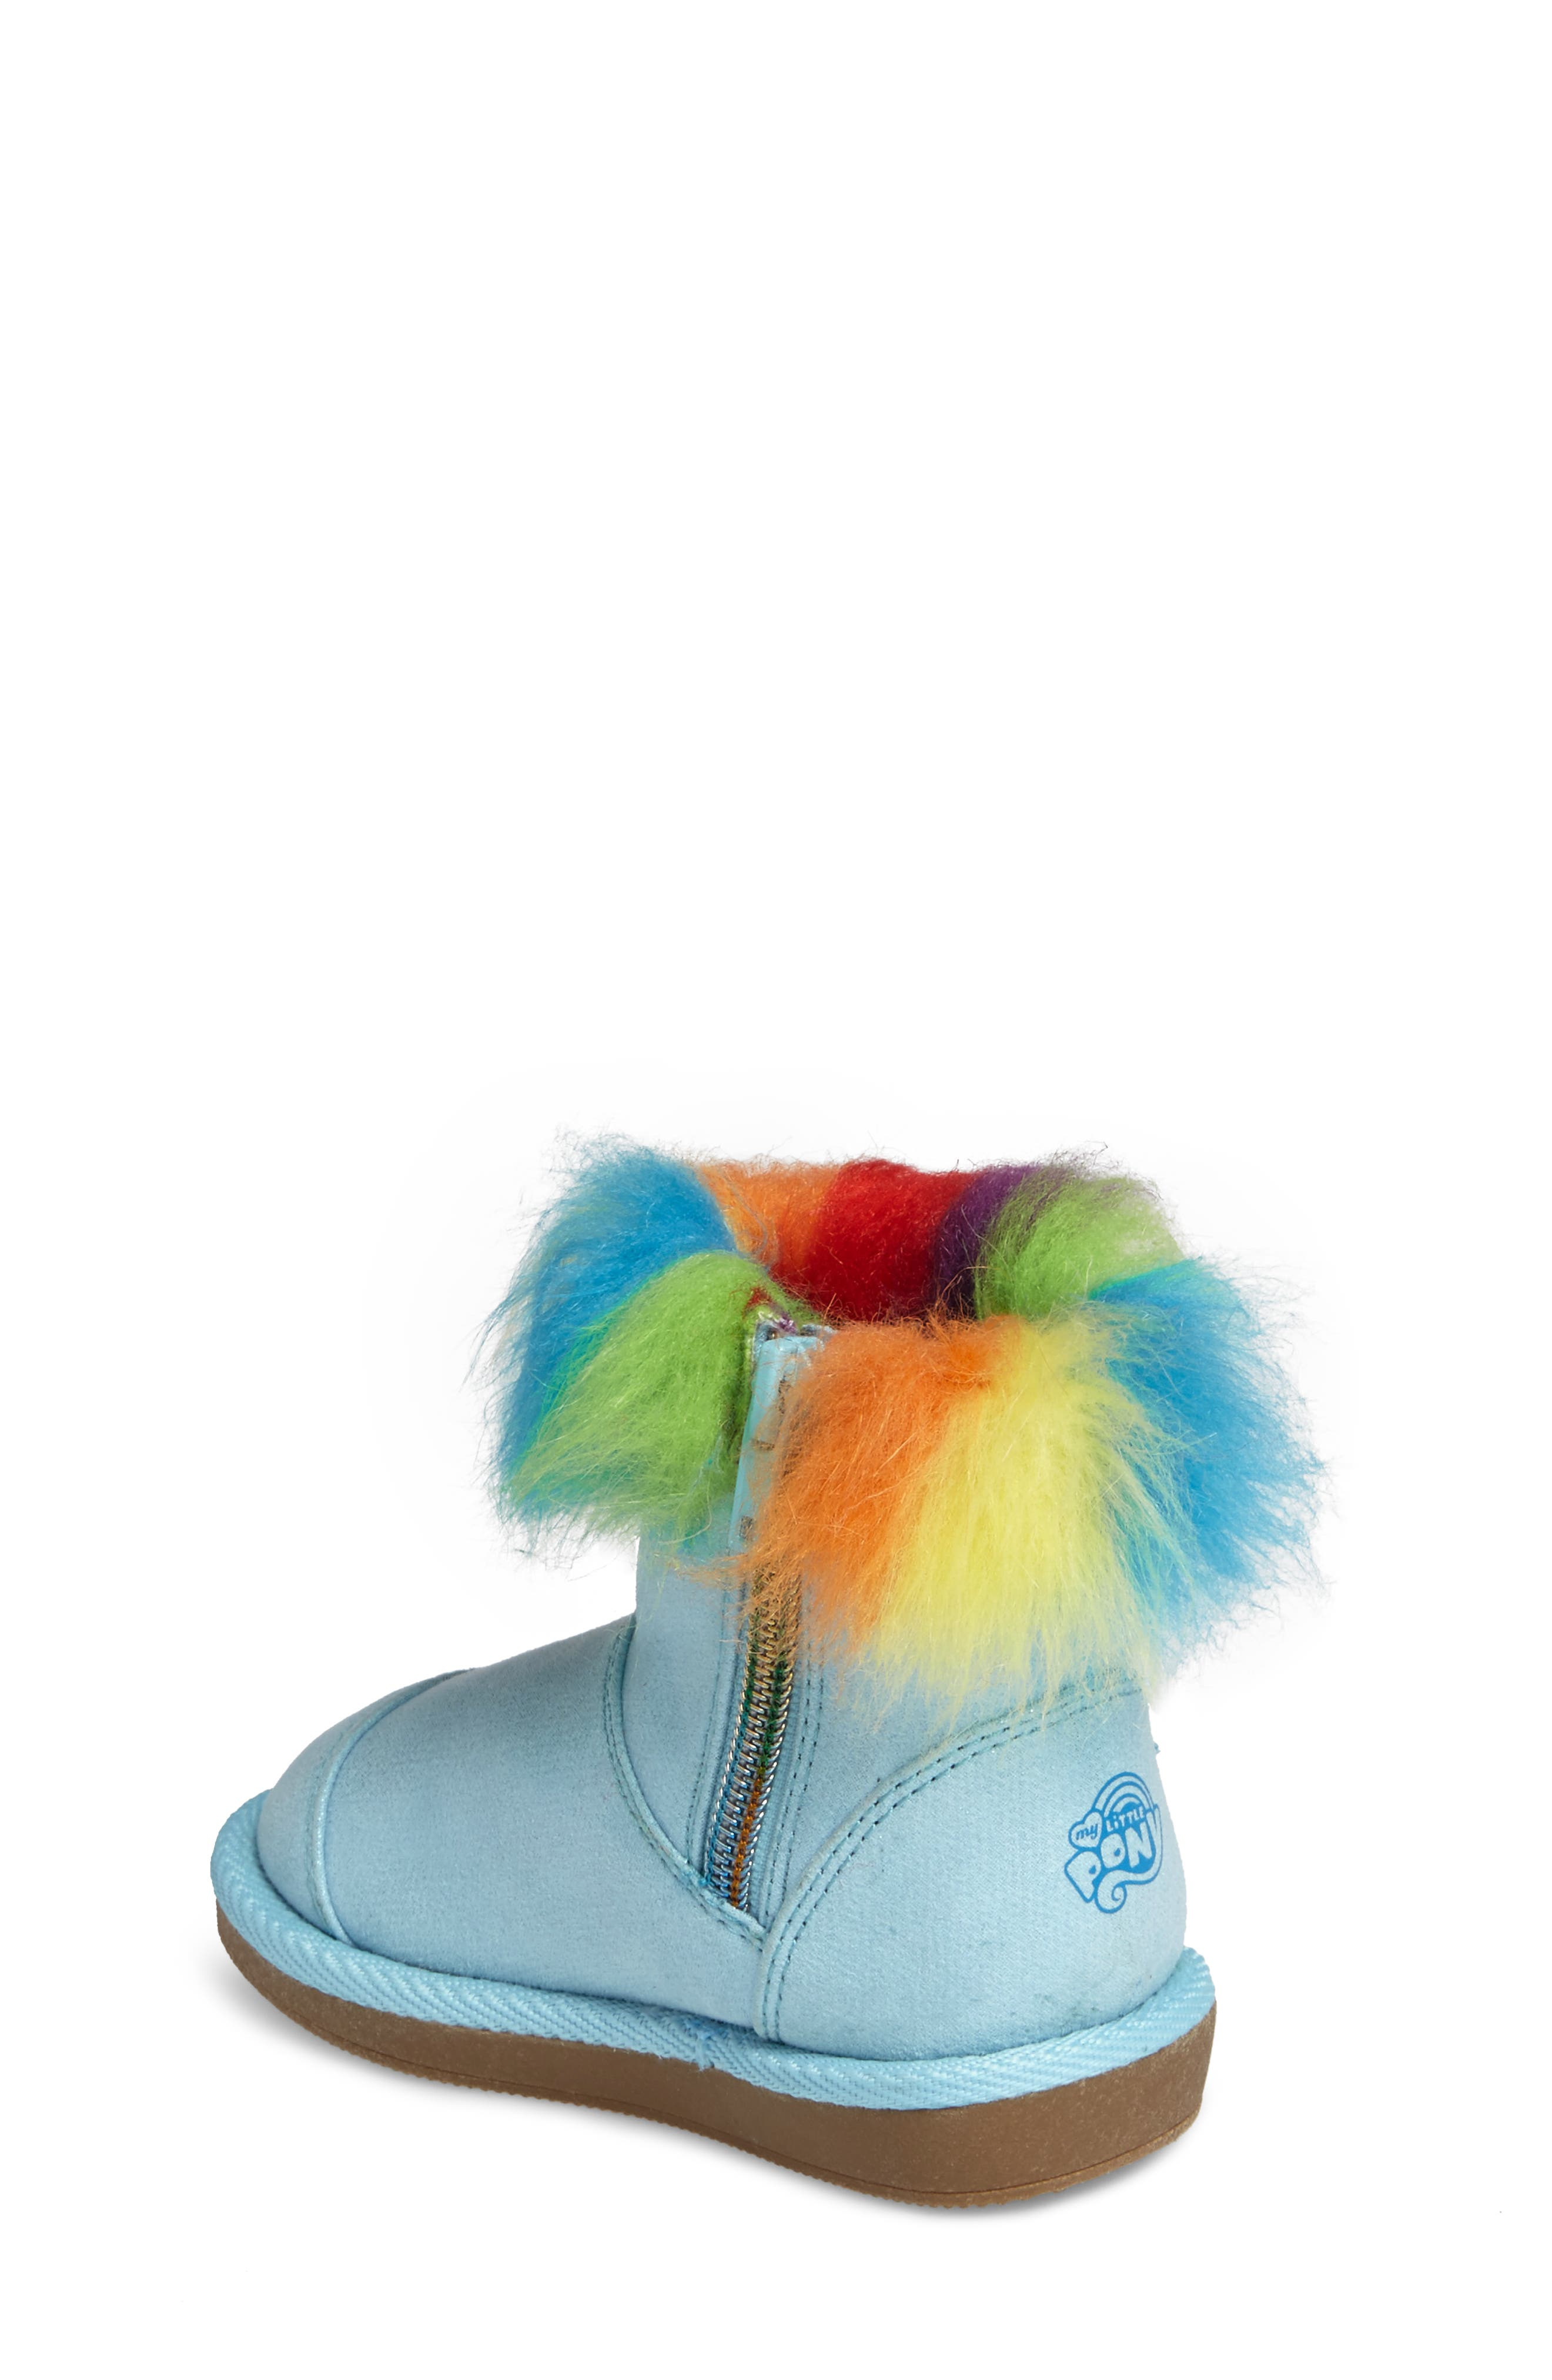 My Little Pony<sup>®</sup> Rainbow Dash Boot,                             Alternate thumbnail 2, color,                             400